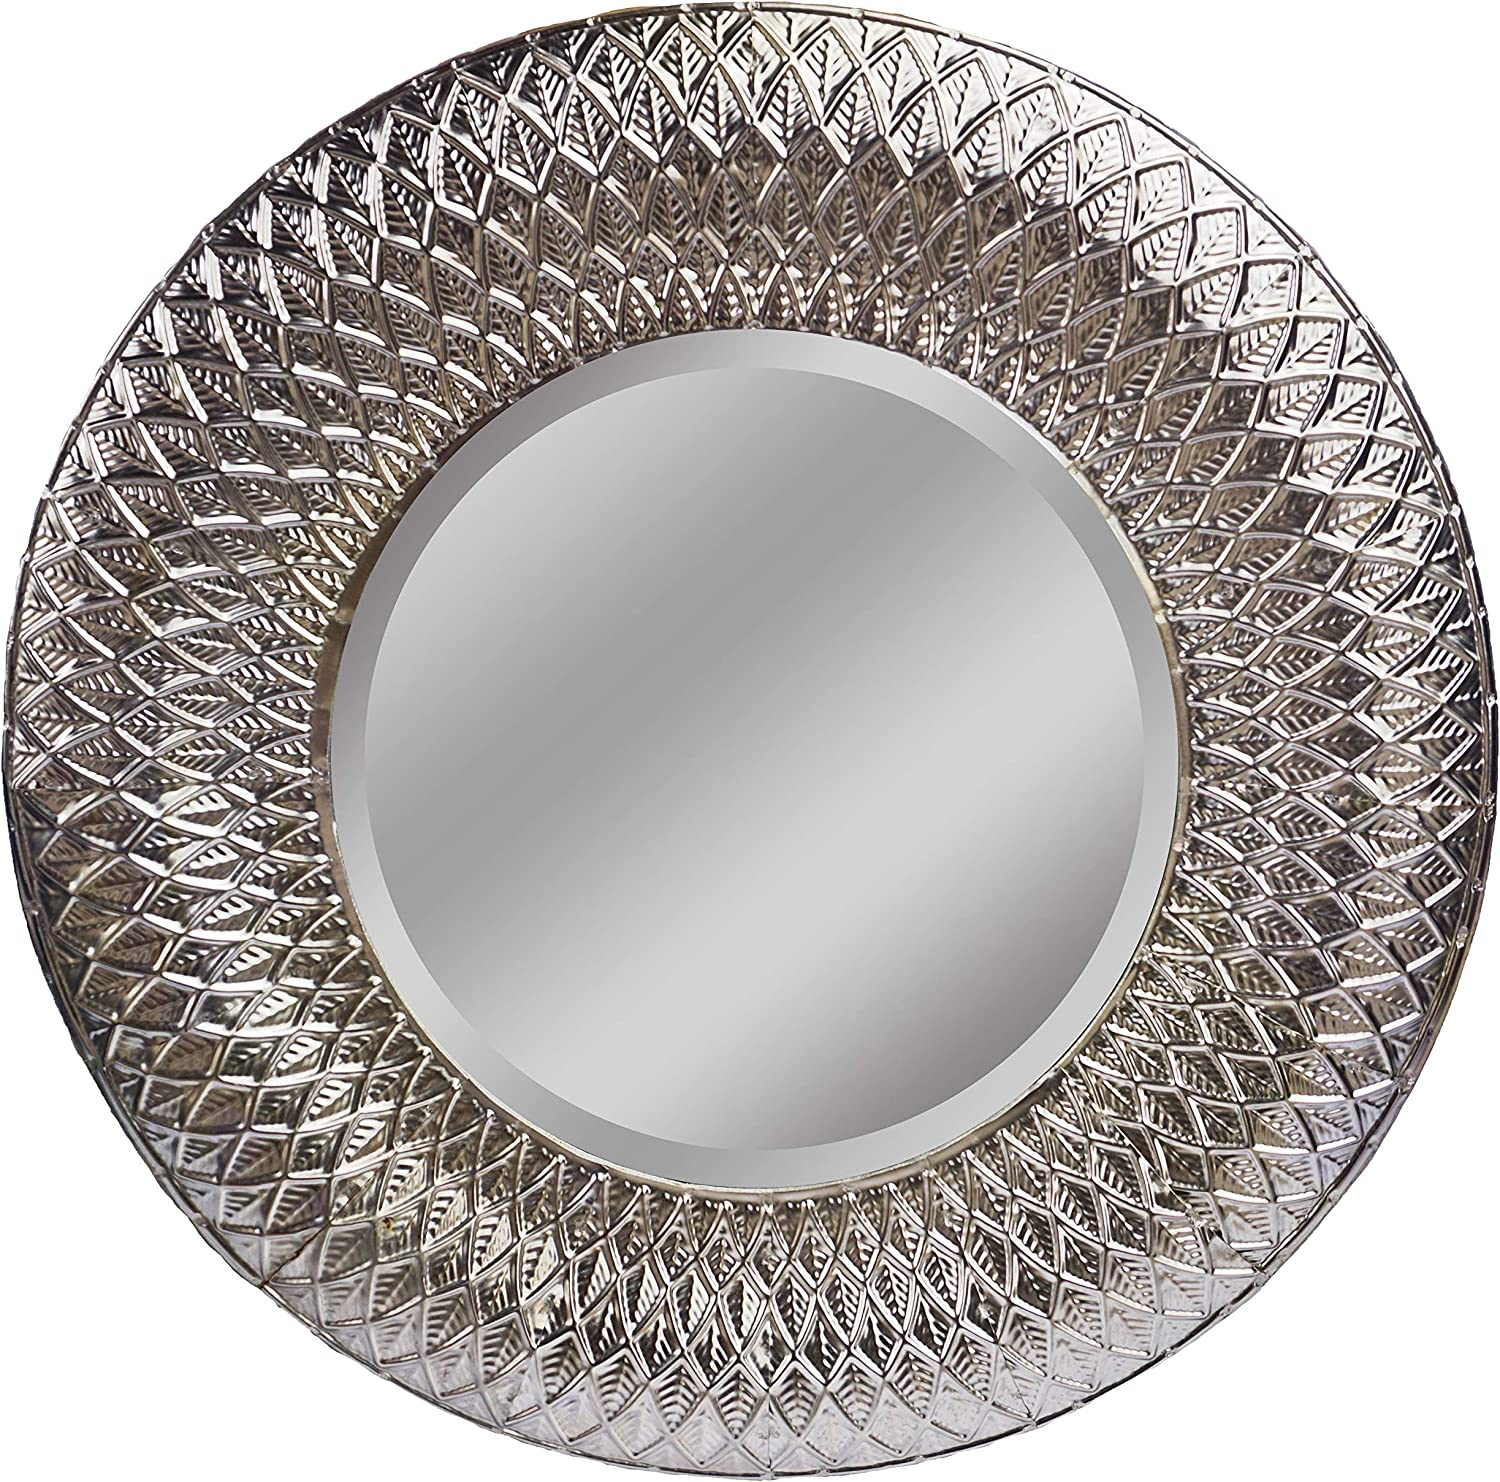 Amazon Com Lulu Decor 19 Gothic Round Silver Metal Beveled Wall Mirror Decorative Mirror For Home Office Gothic 19 Furniture Decor